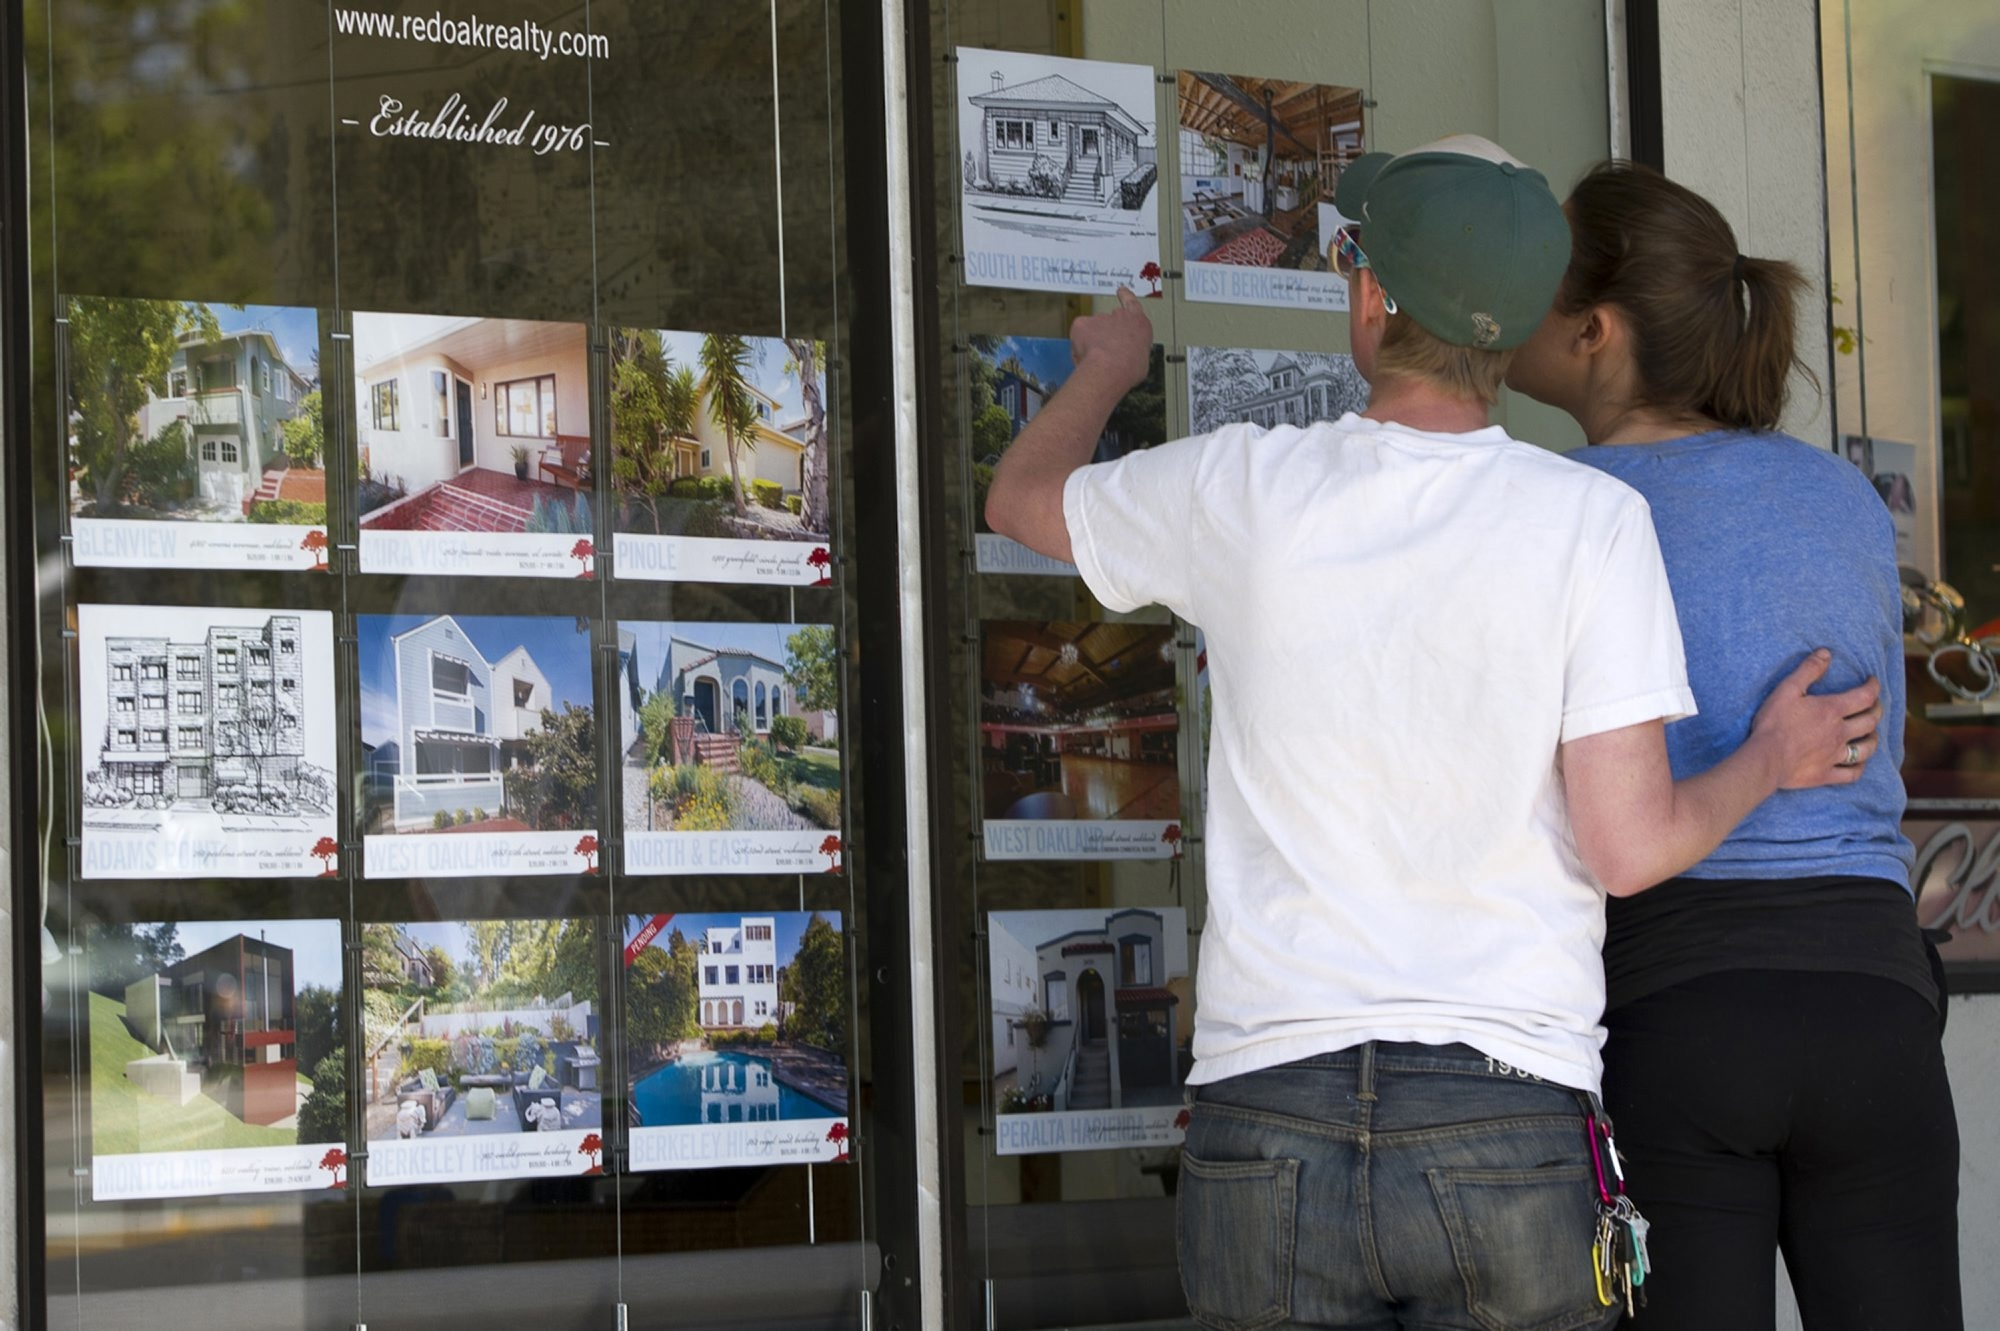 Looking at fliers for homes for sale in Berkeley, Calif., this couple could find qualifying for a mortgage easier if new rules are adopted.